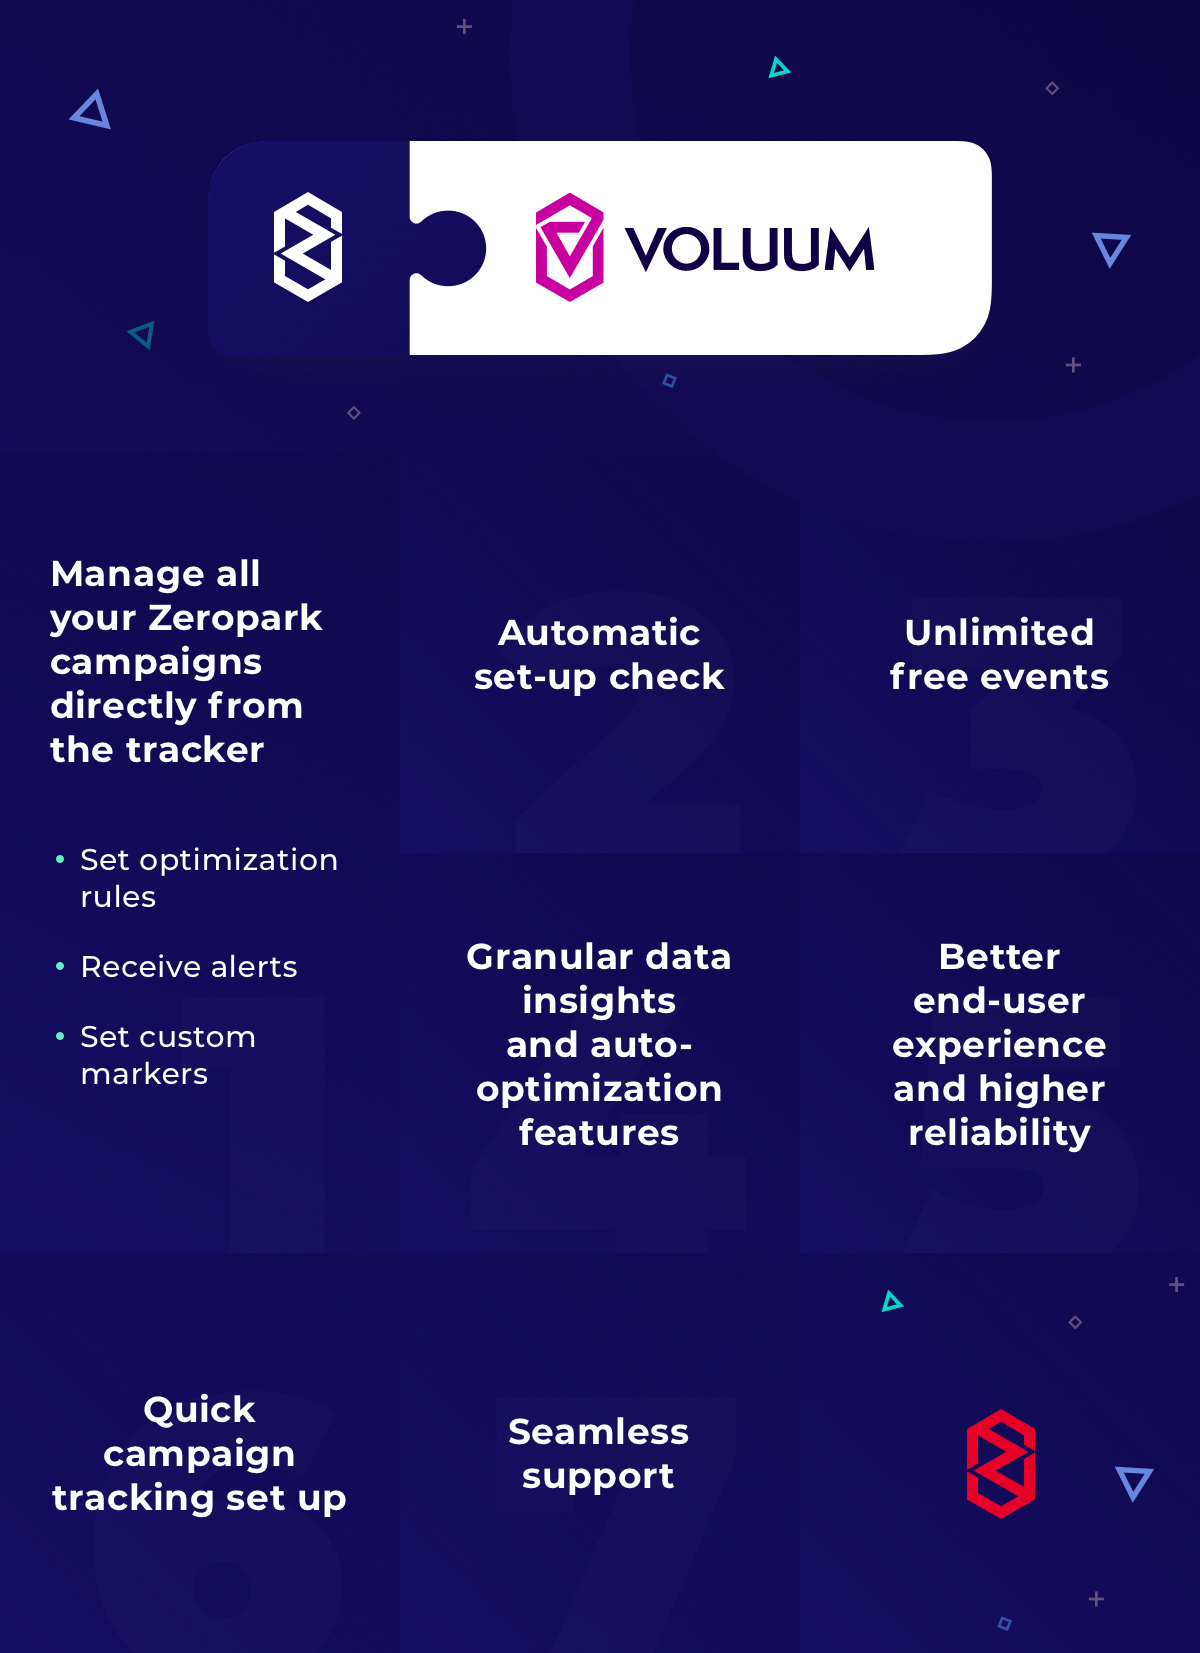 Voluum Integration Benefits